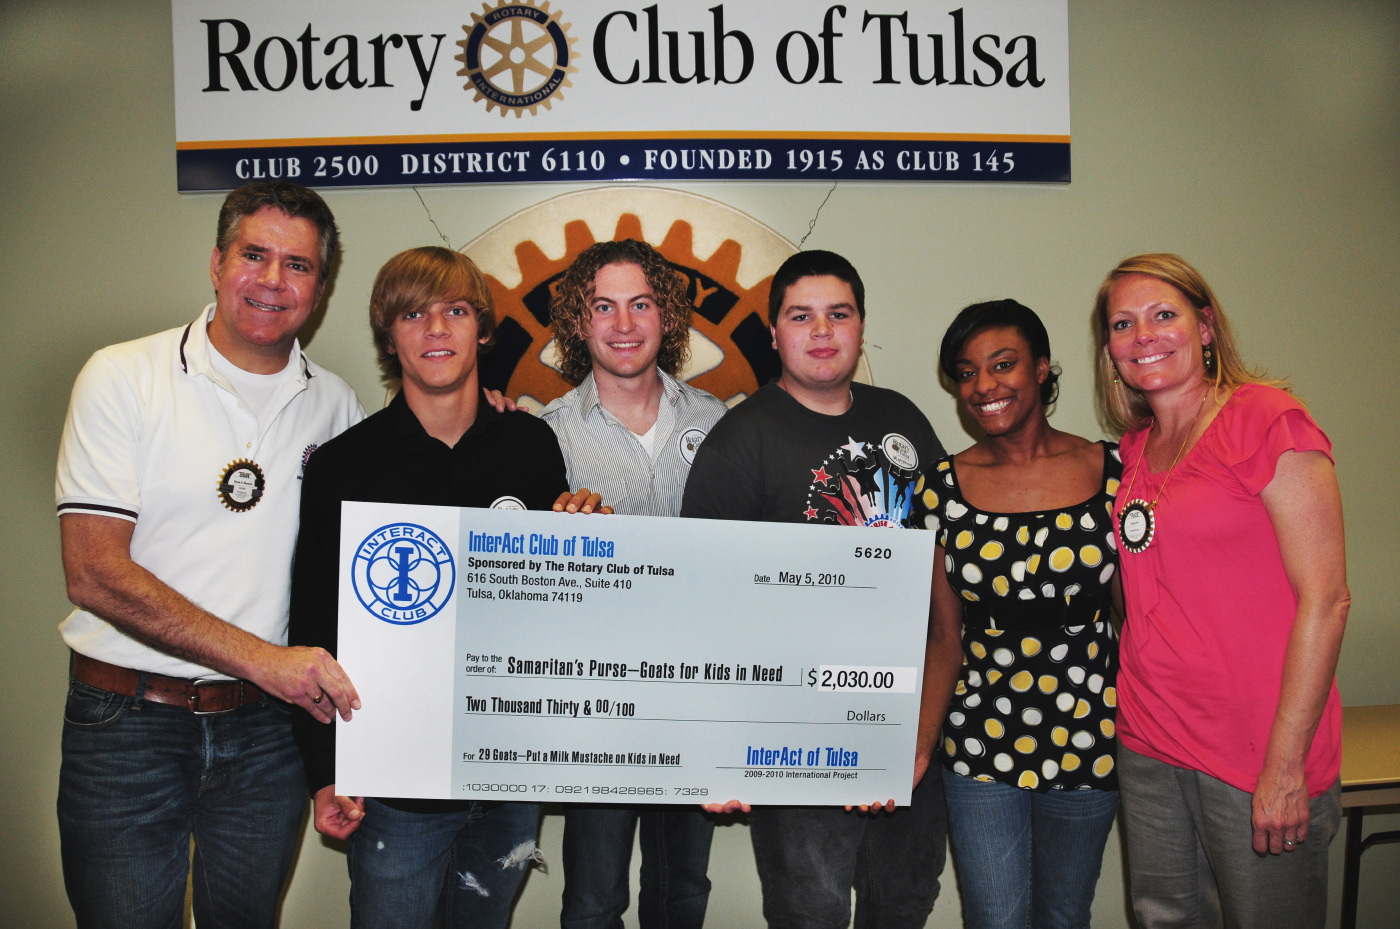 Rotary Club Of Tulsa